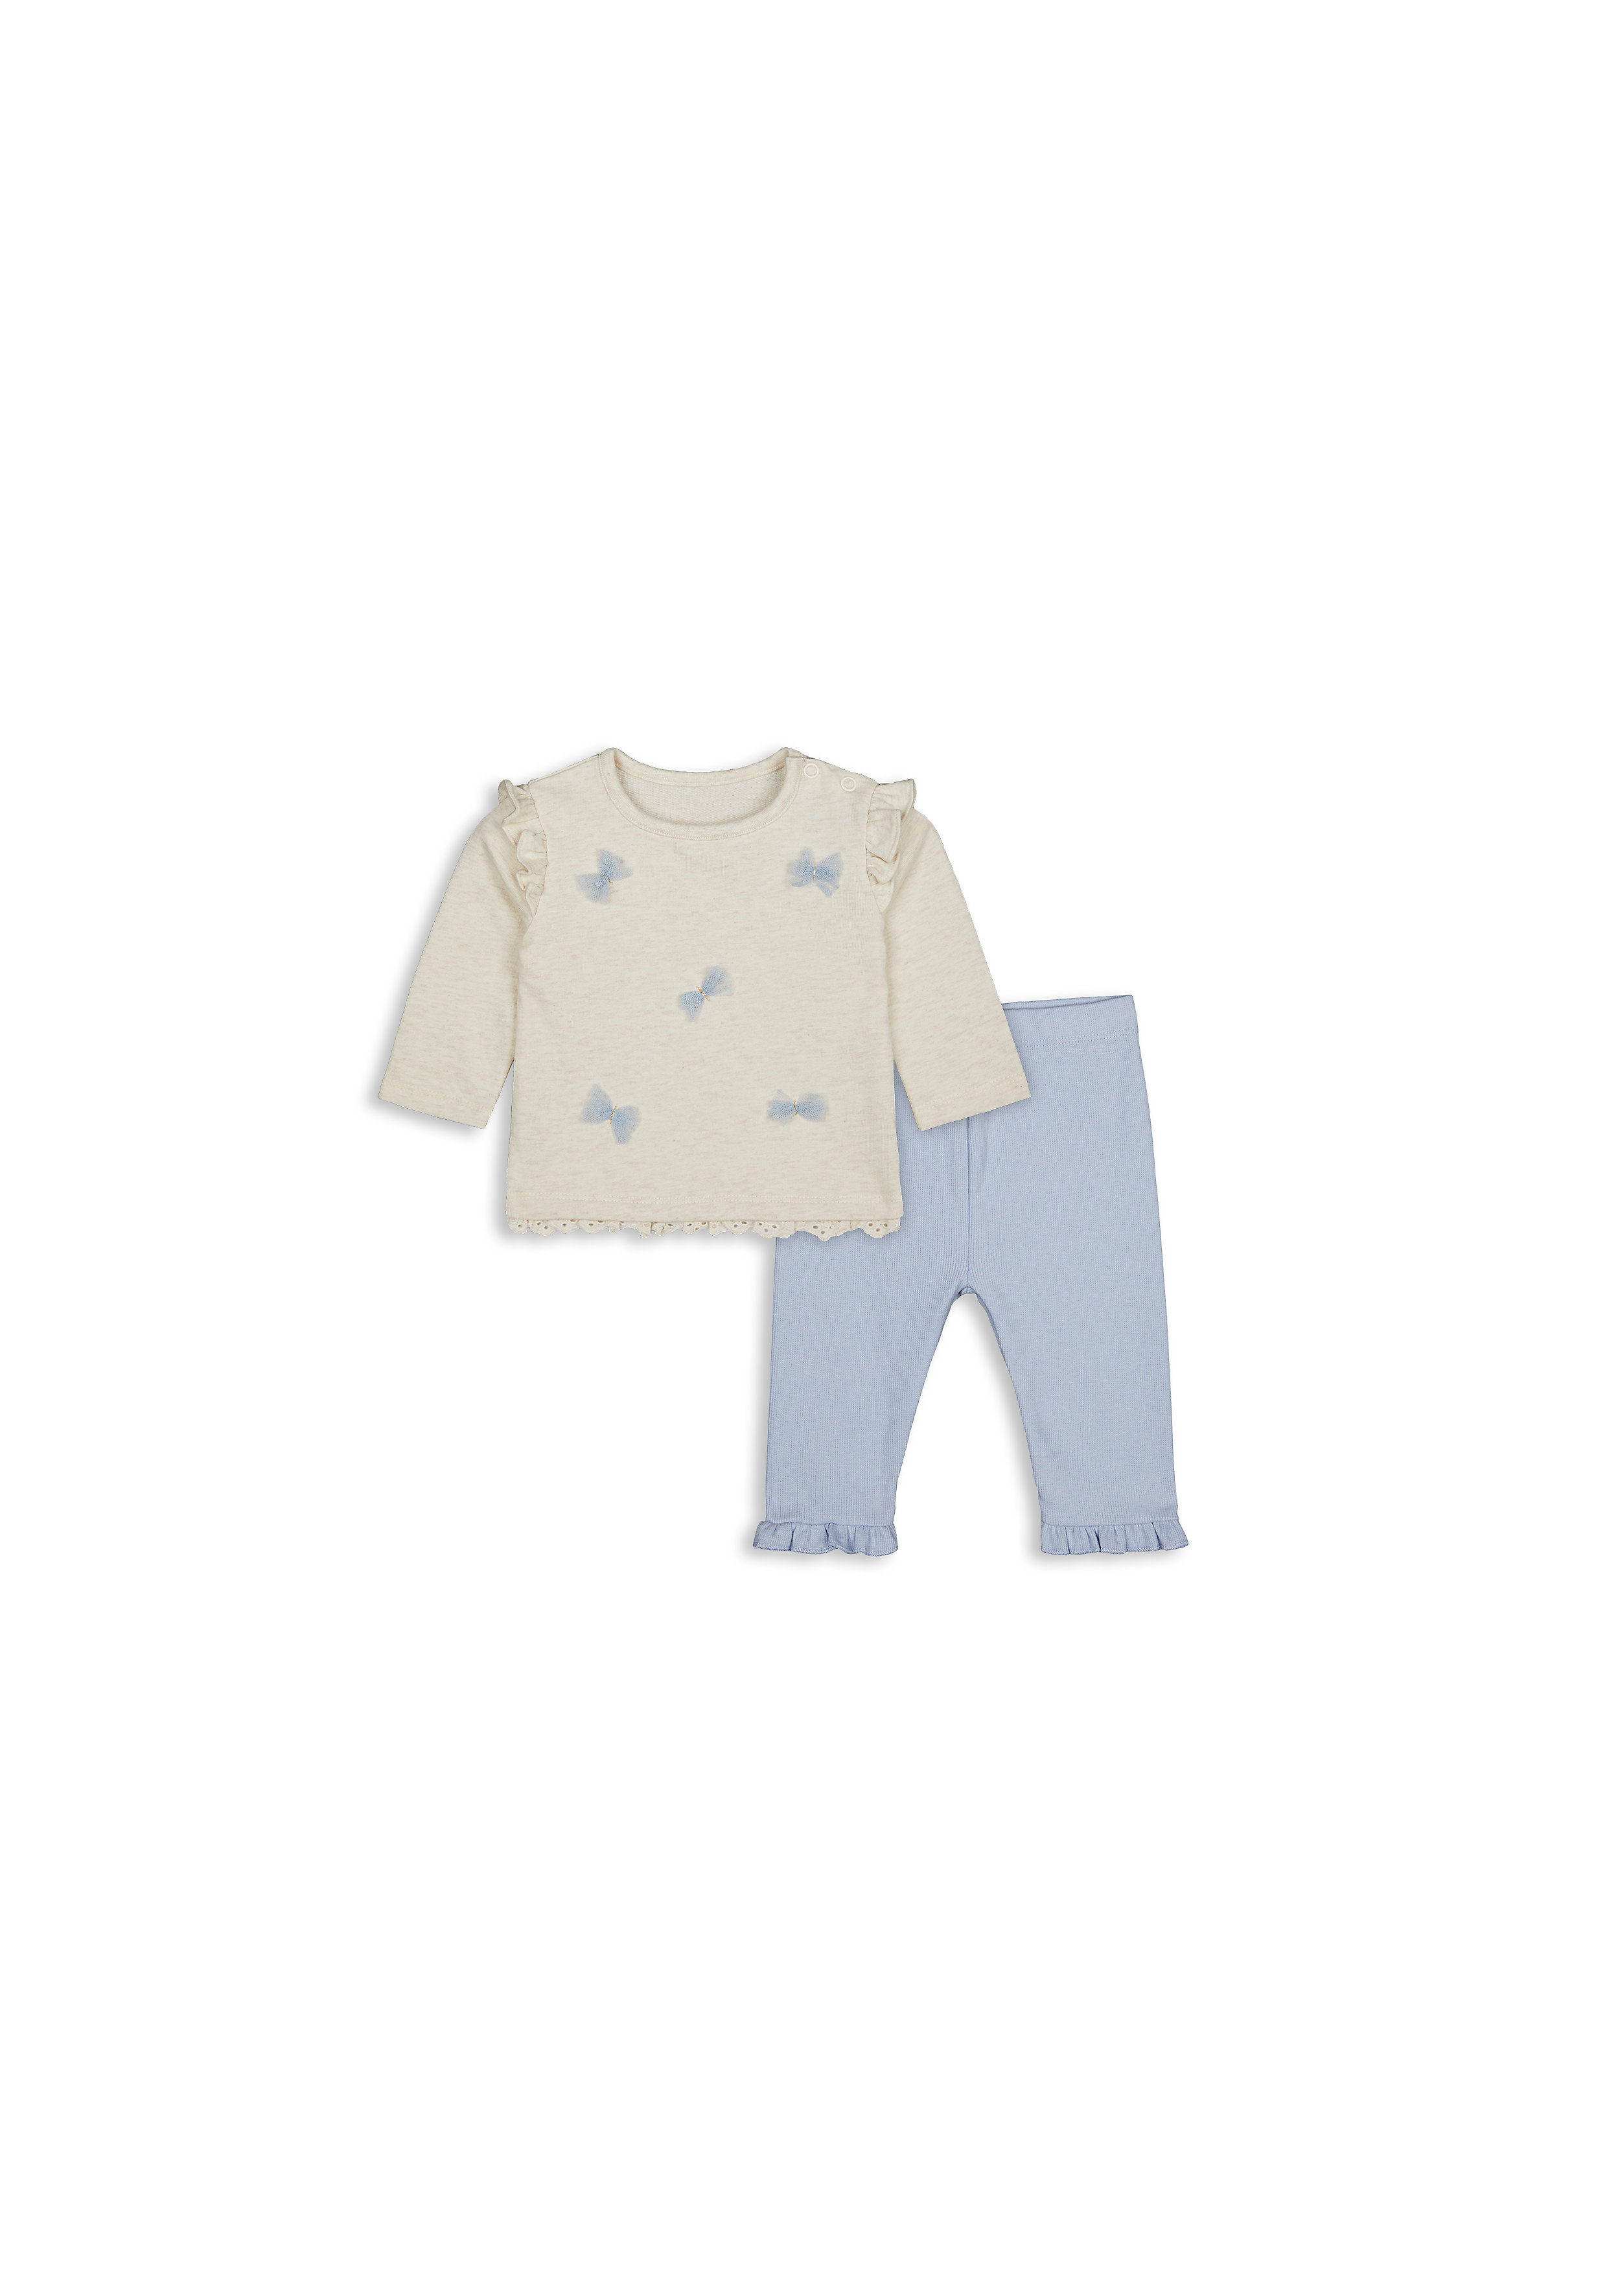 Mothercare | Girls Full Sleeves Top And Legging Set 3D Butterfly Design - Blue